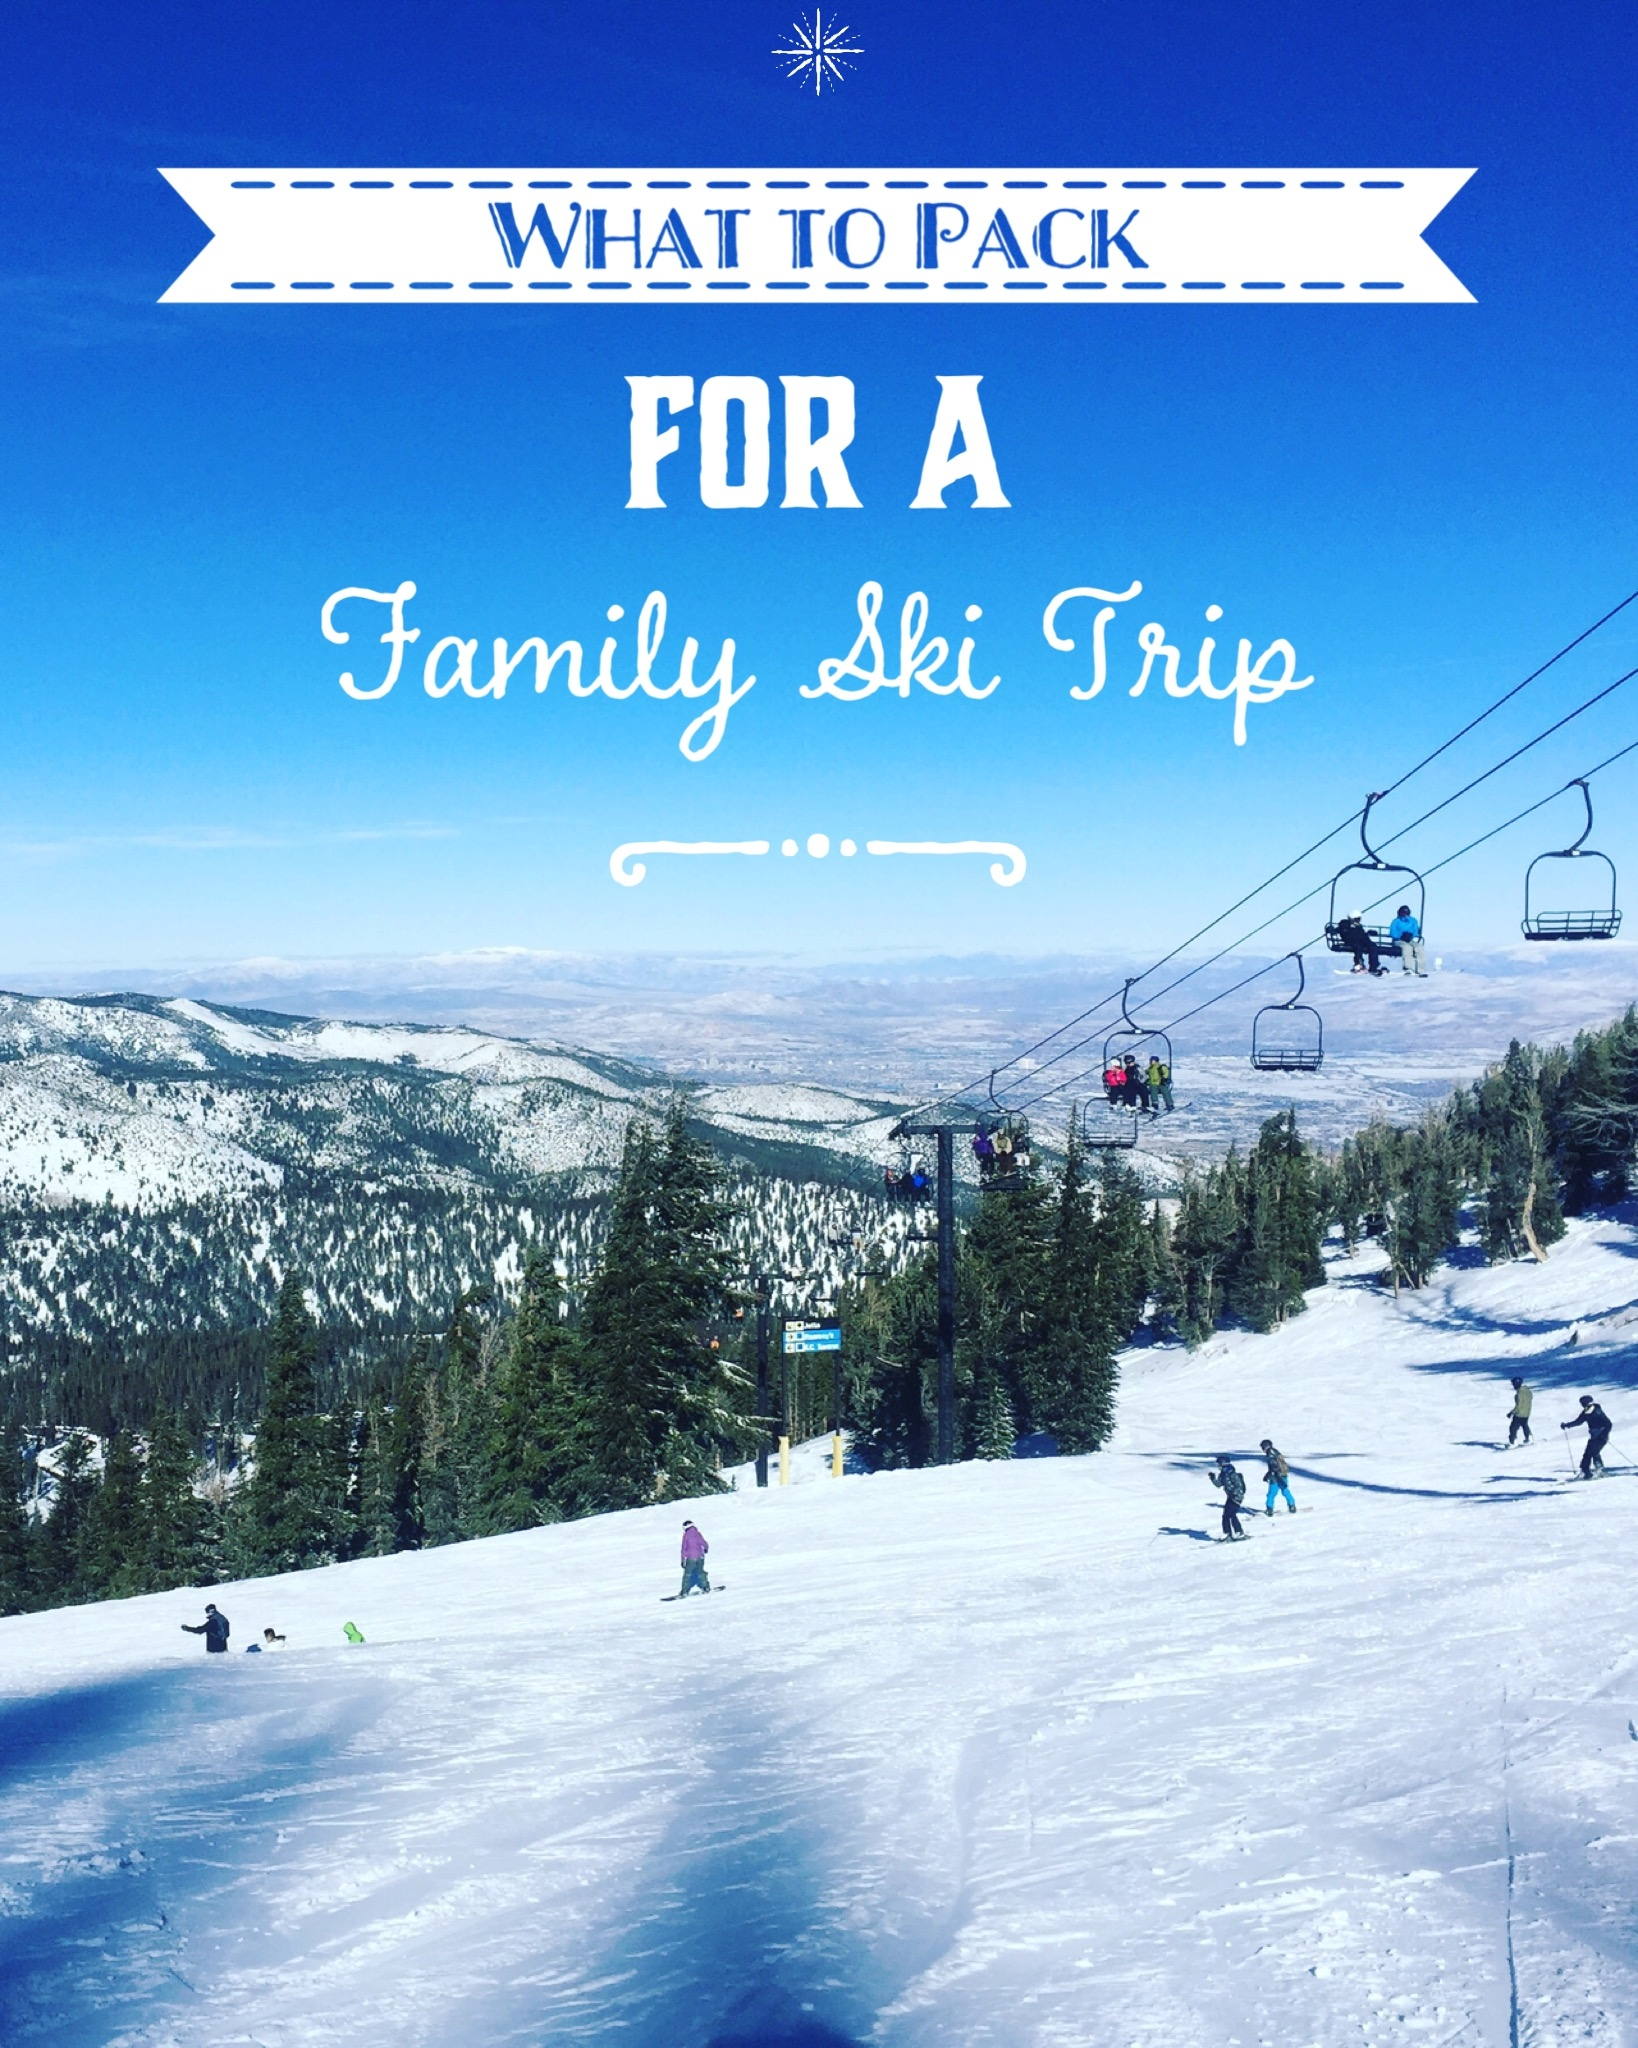 What to pack for a family ski trip.